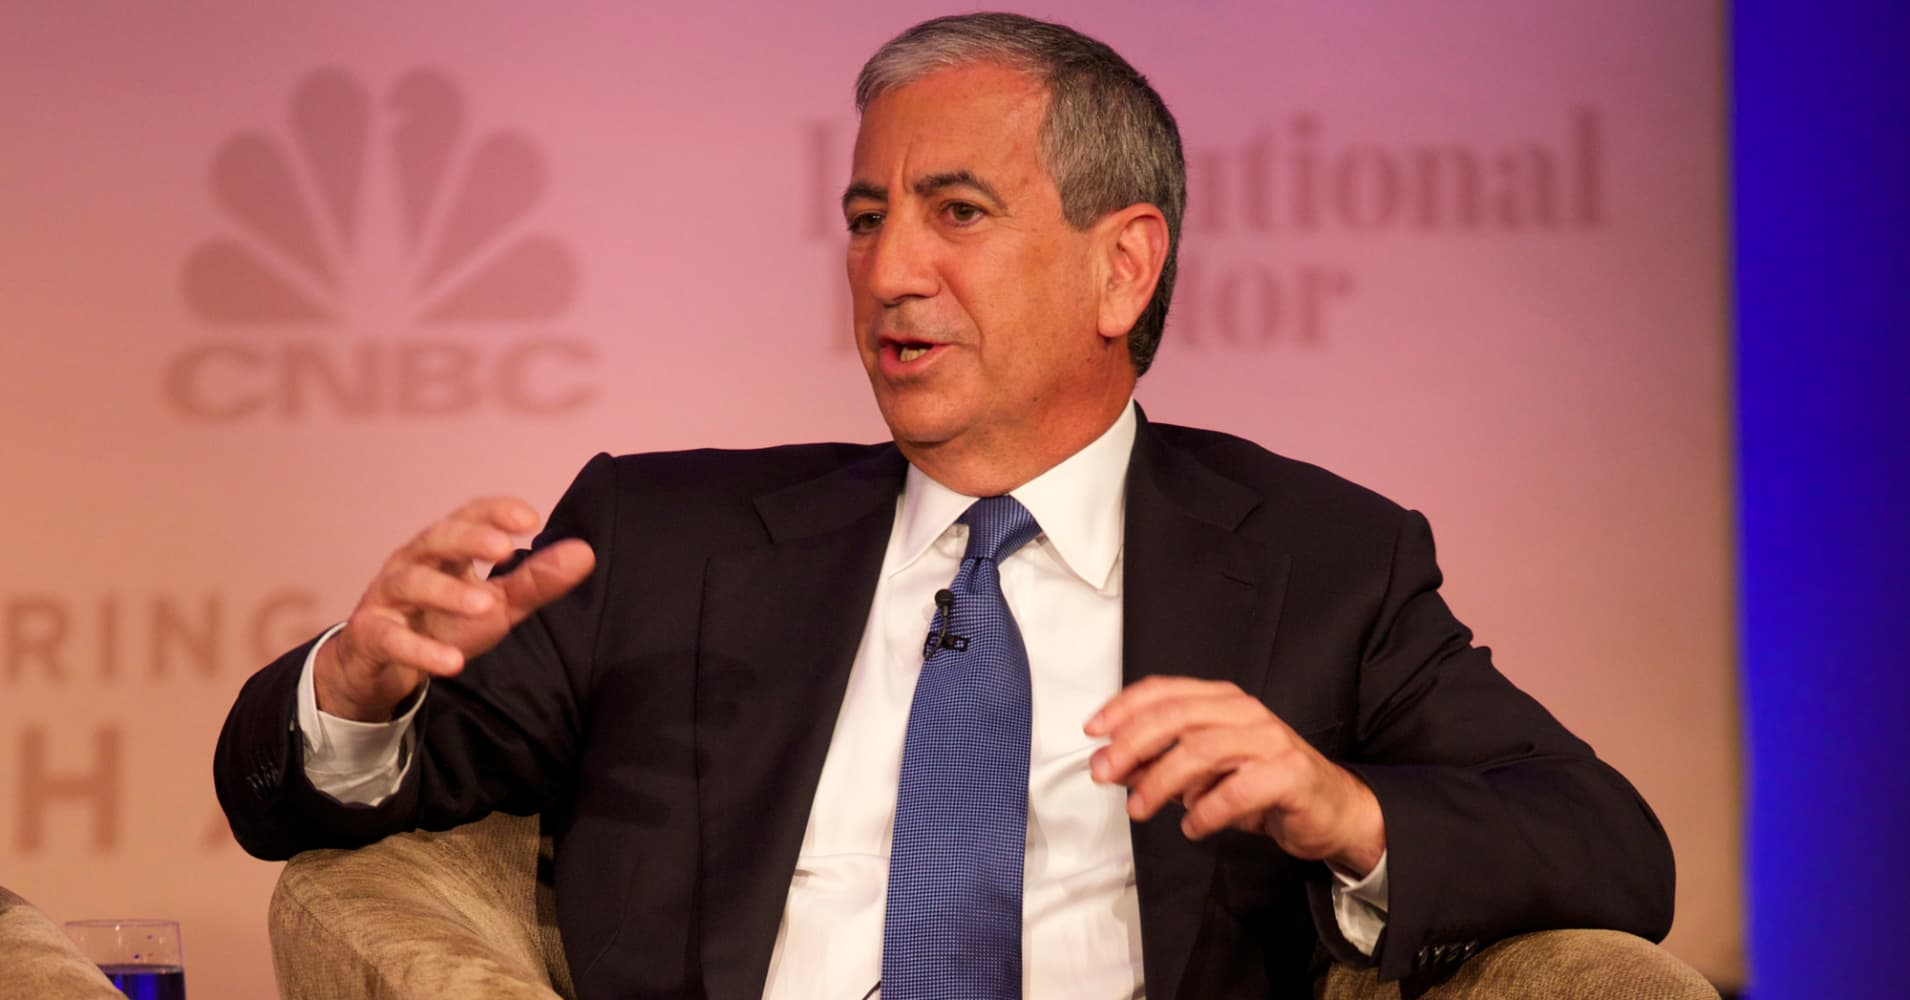 'People are underestimating the impact of the tax reform,' says Ken Moelis, Wall Street veteran